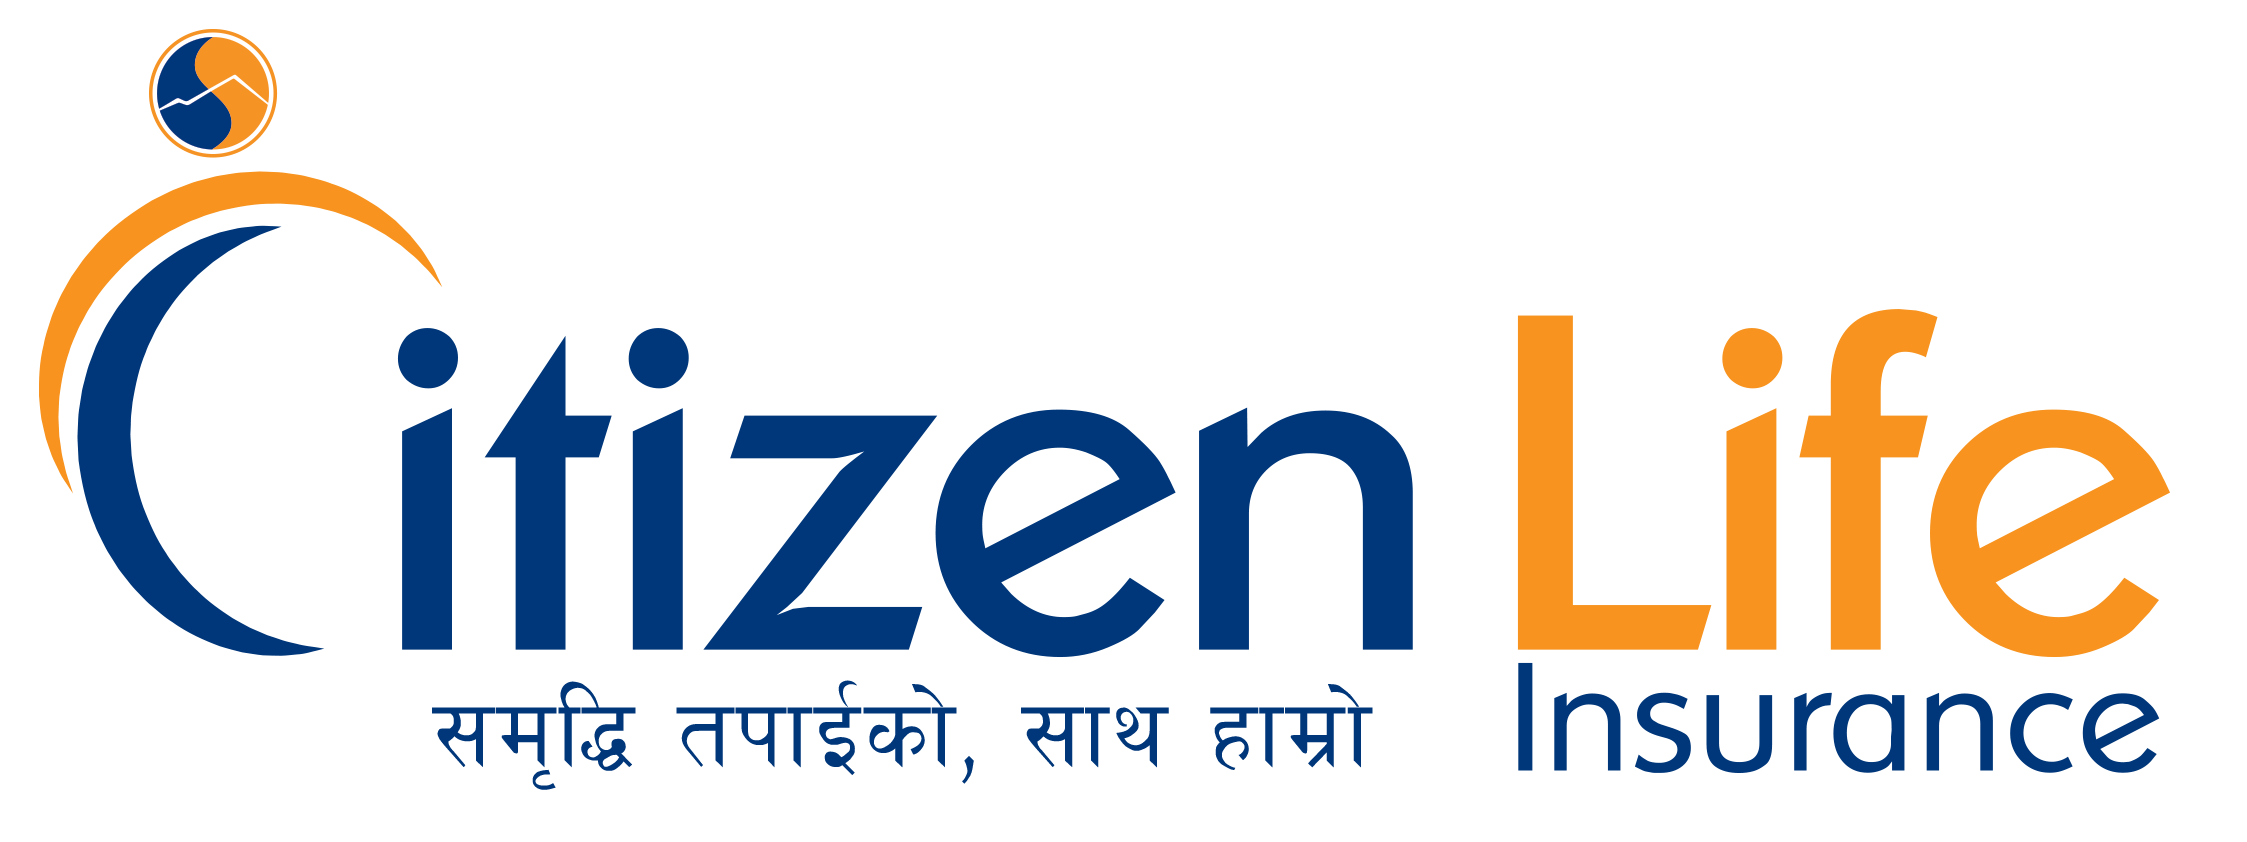 Net Insurance Premium Of Citizen Life Insurance Increases By 71.10%